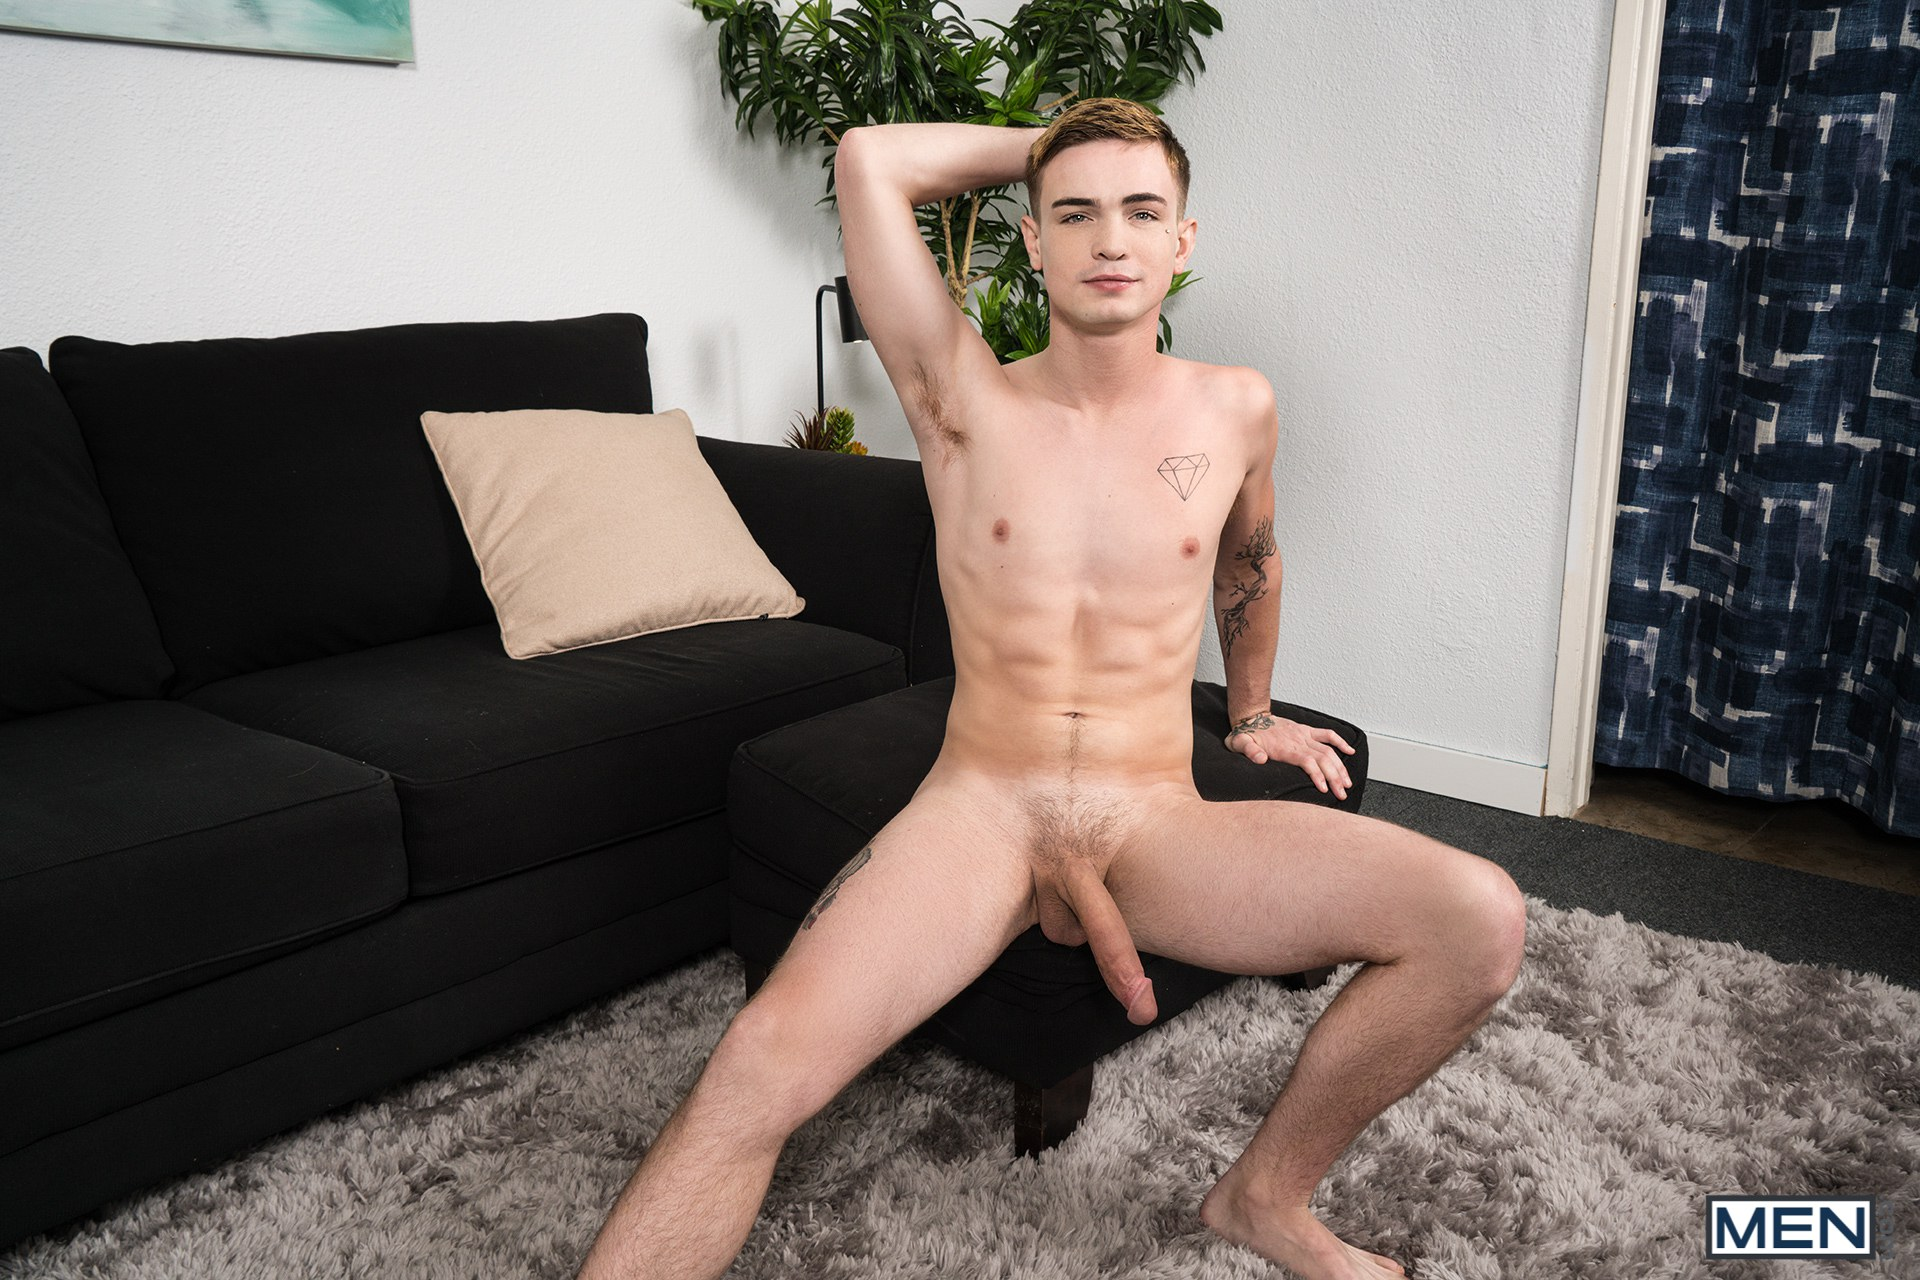 Aston Springs and Cassidy Clyde from Men fucking